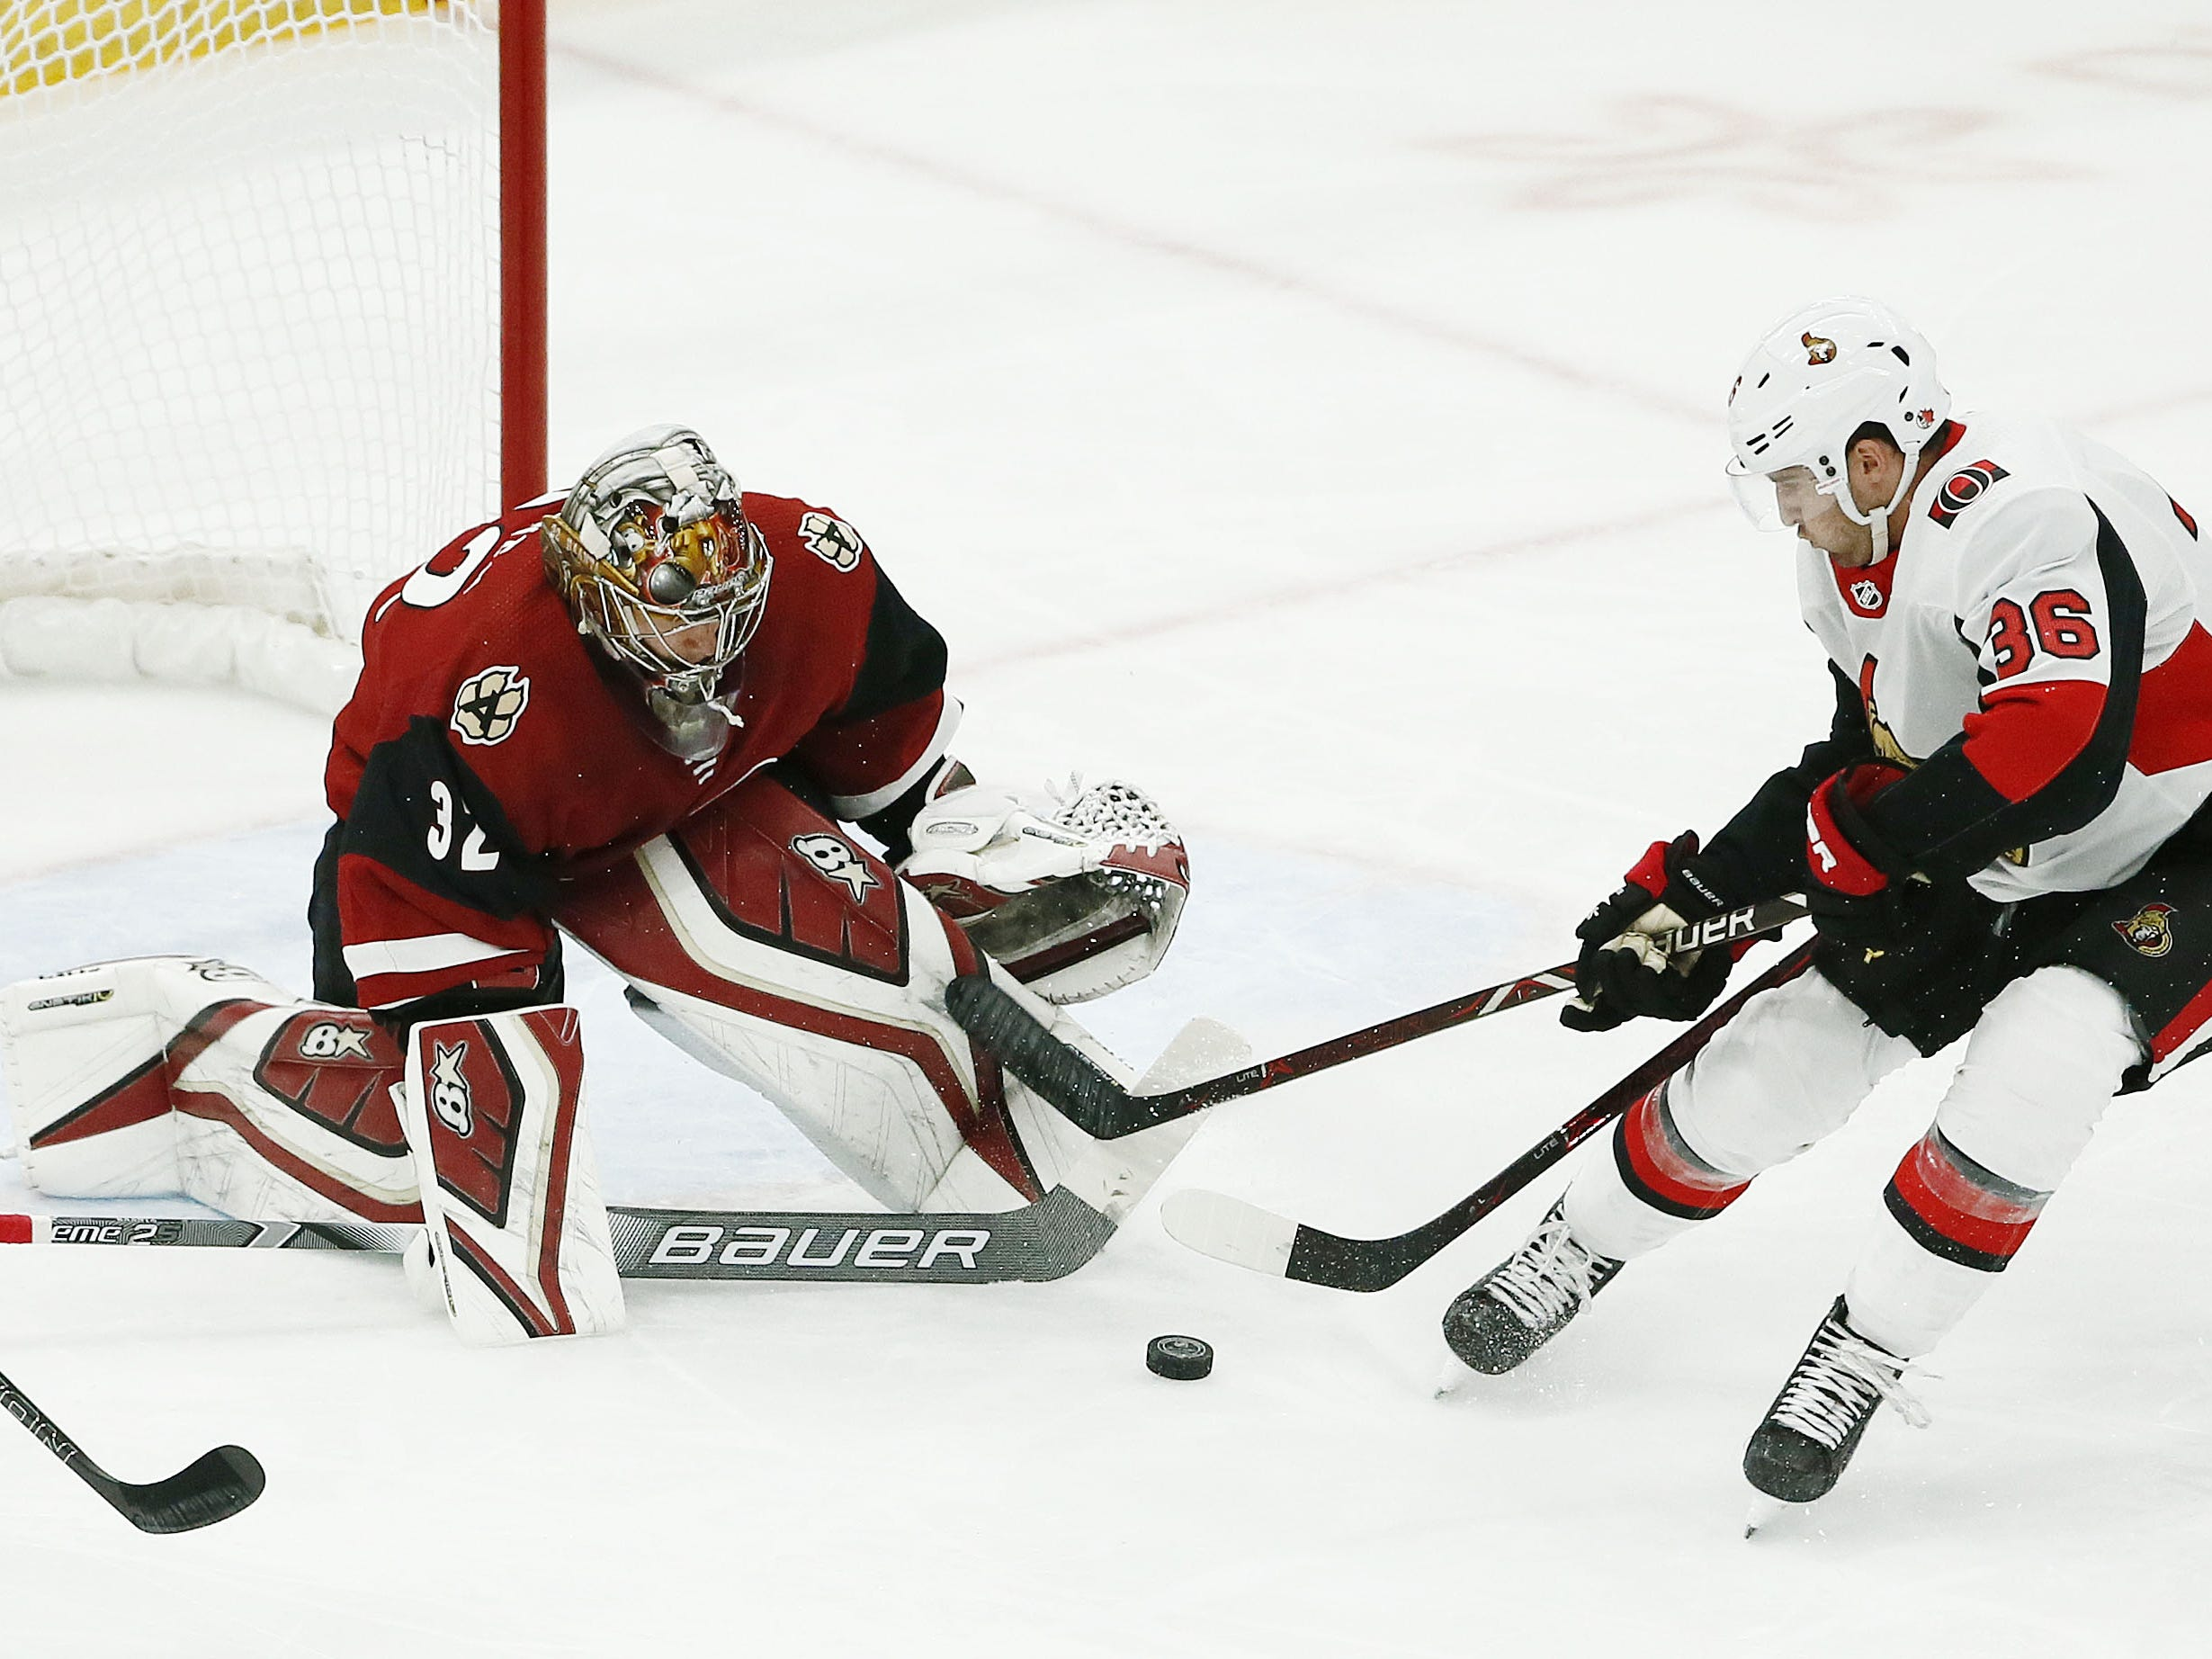 Arizona Coyotes goalie Antti Raanta blocks a shot by Ottawa Senators center Colin White in the first period on Oct. 30, 2018 at Gila River Arena.